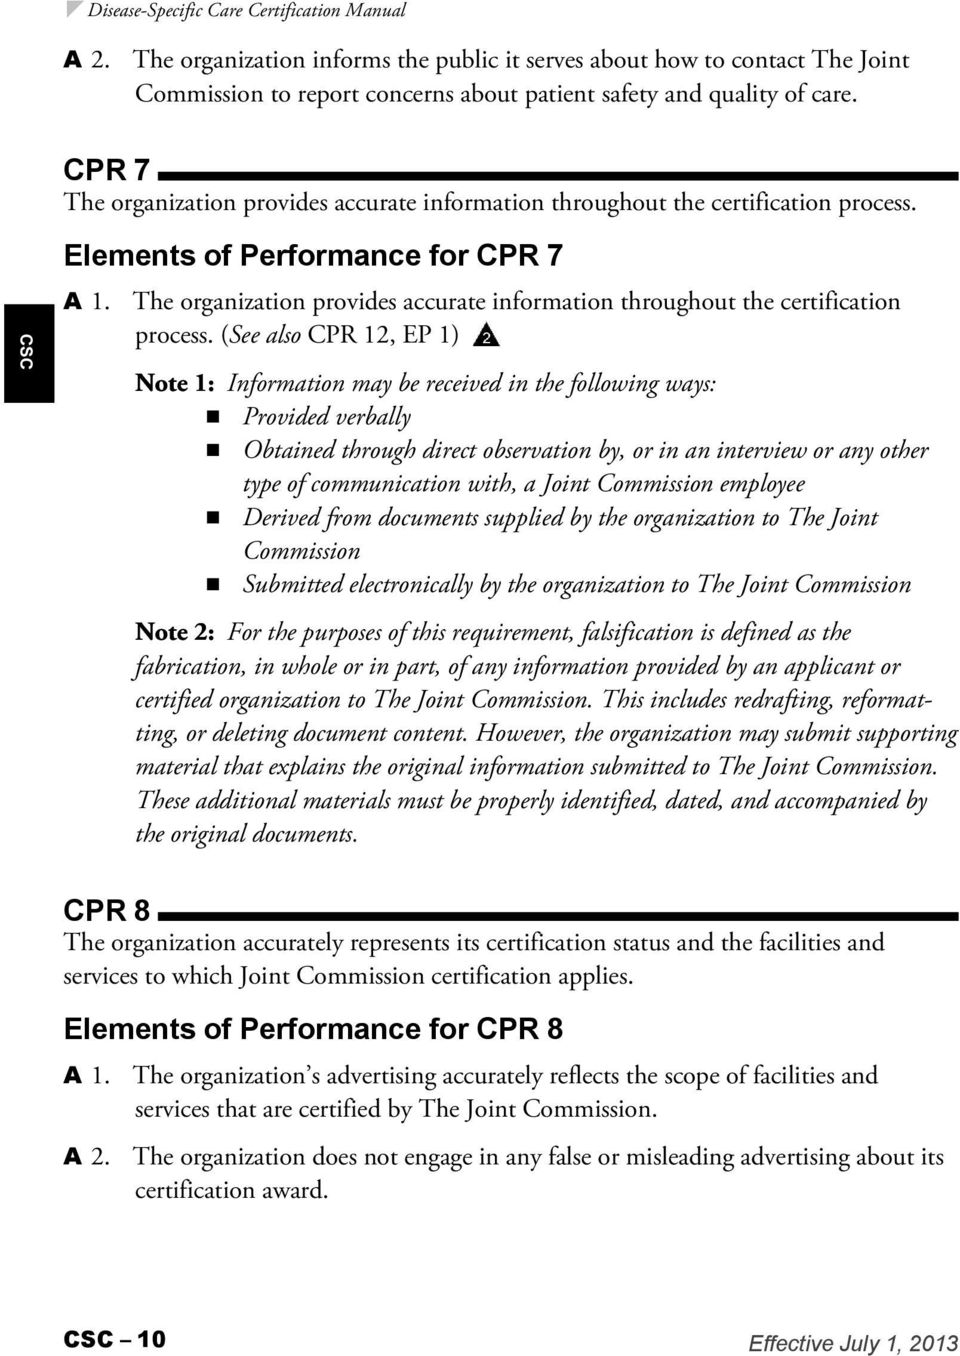 Elements of Performance for  (See also CPR 12, EP 1) Note 1: Information may be received in the following ways: n Provided verbally n Obtained through direct observation by, or in an interview or any